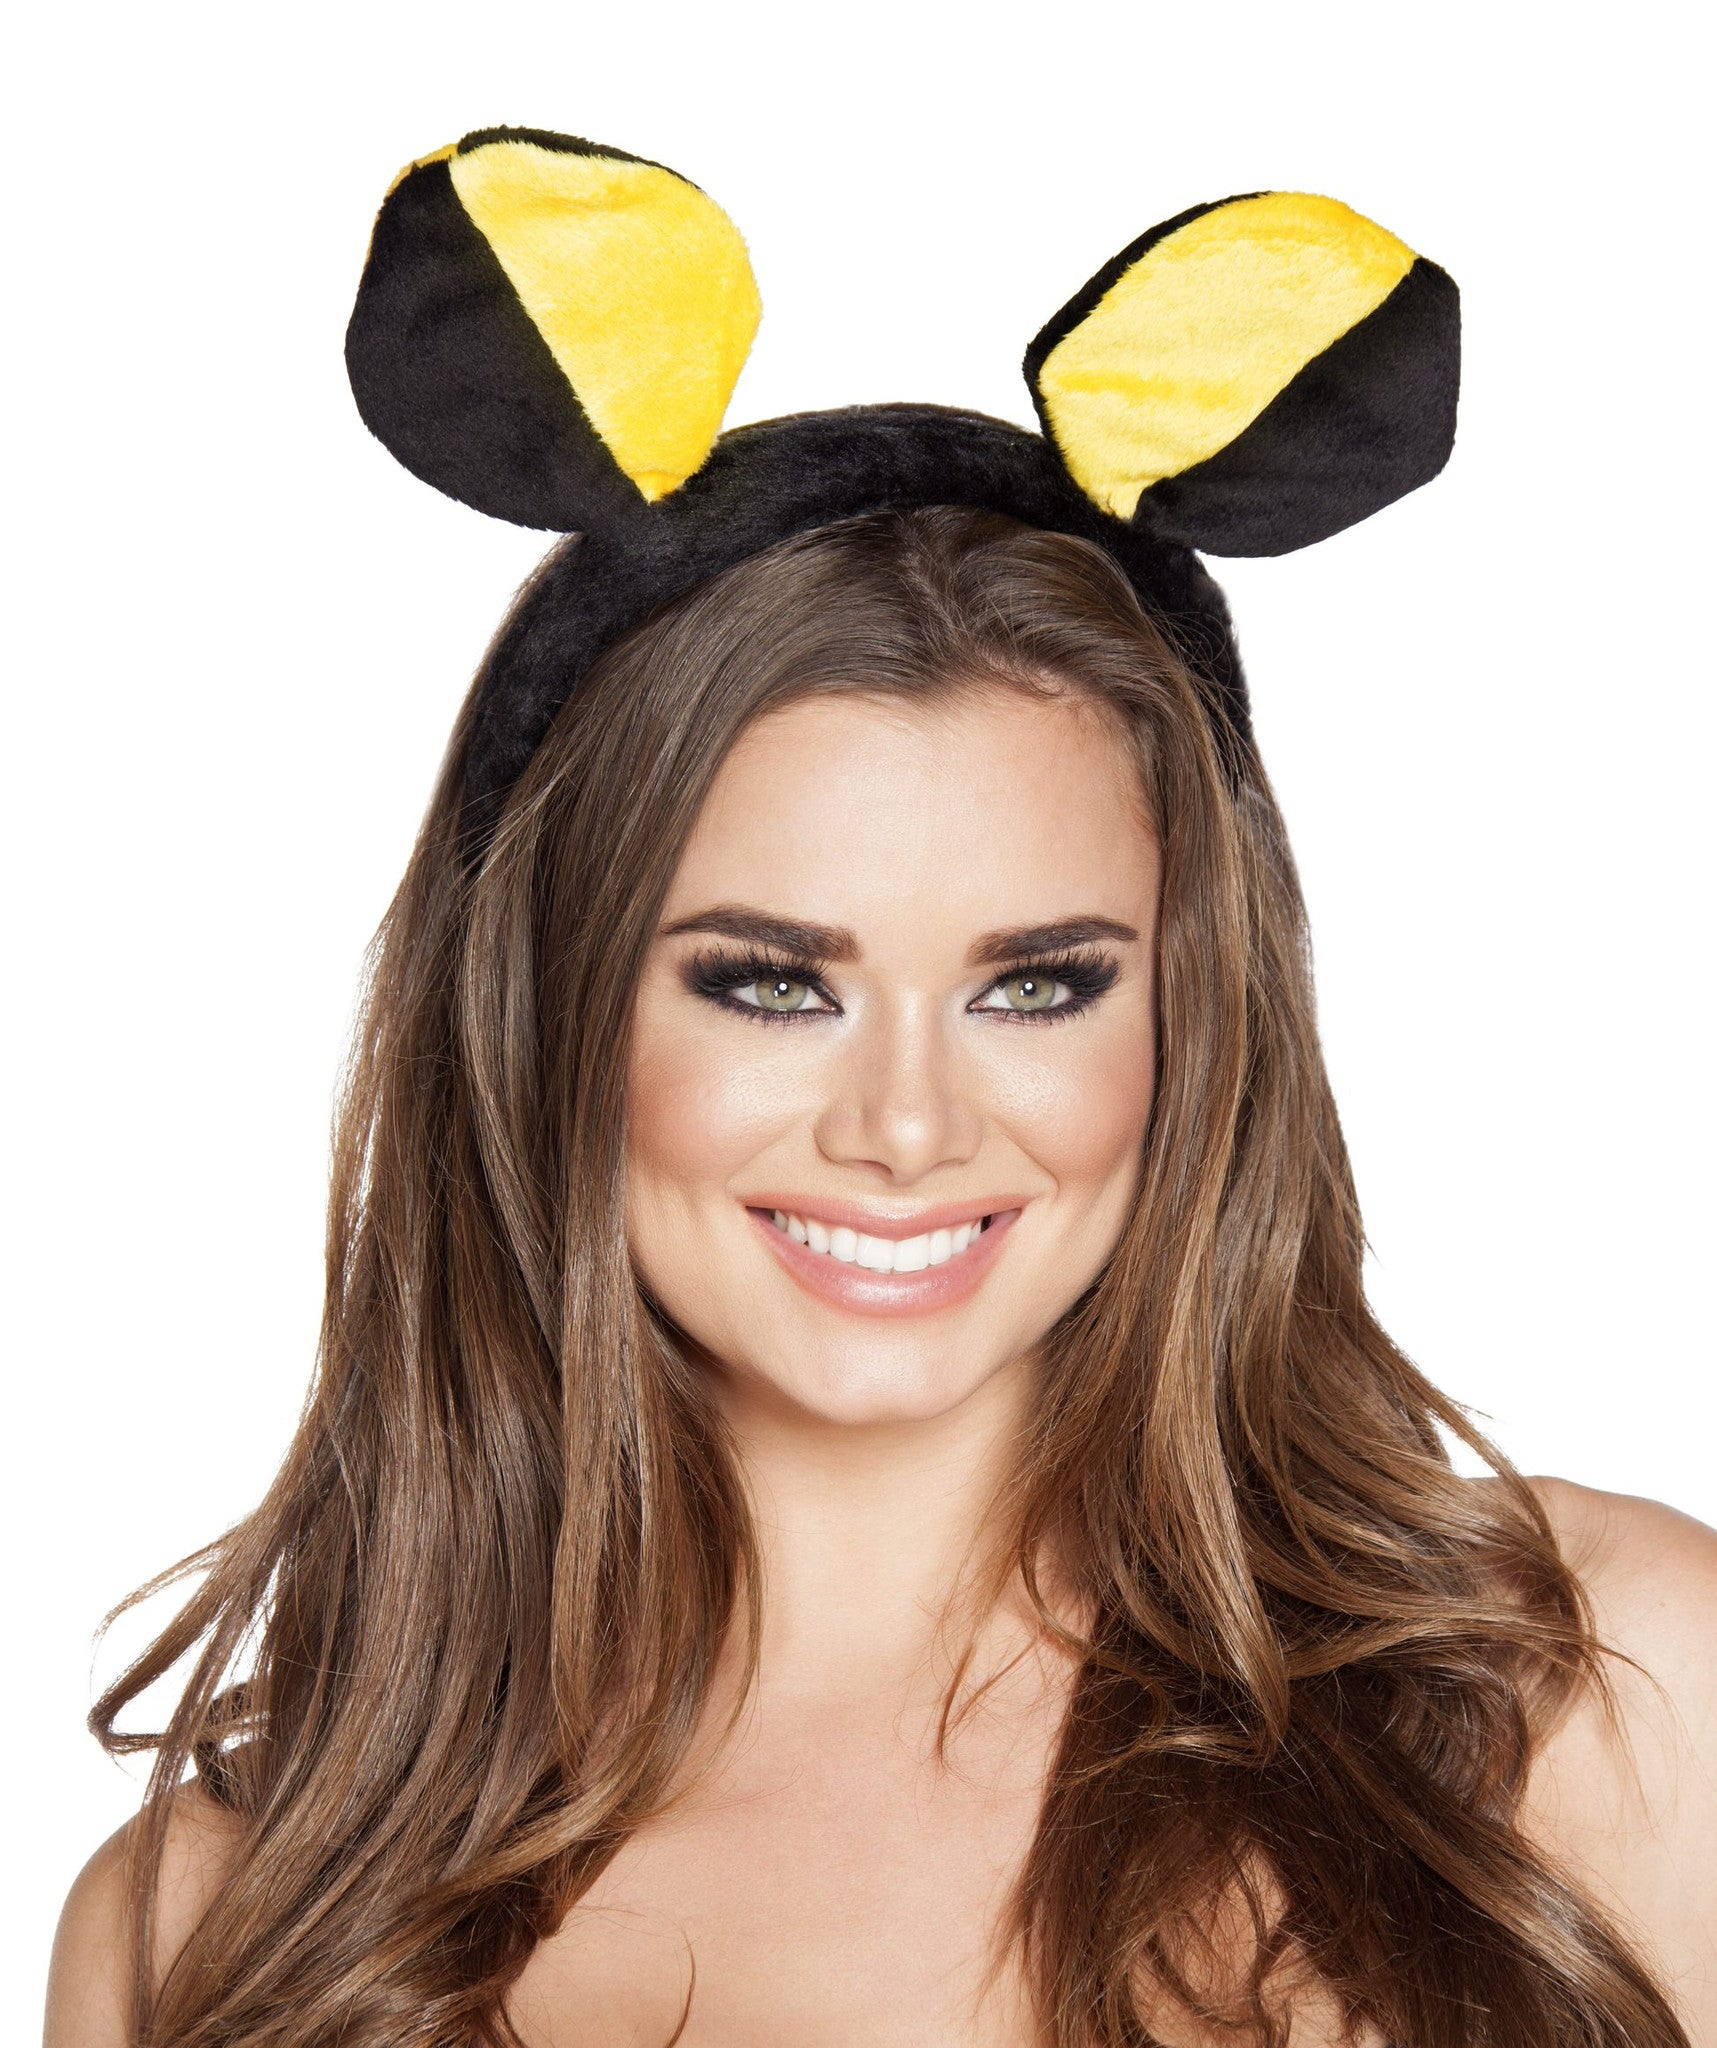 4560 - Yellow/Black Bumble Bee Head Piece